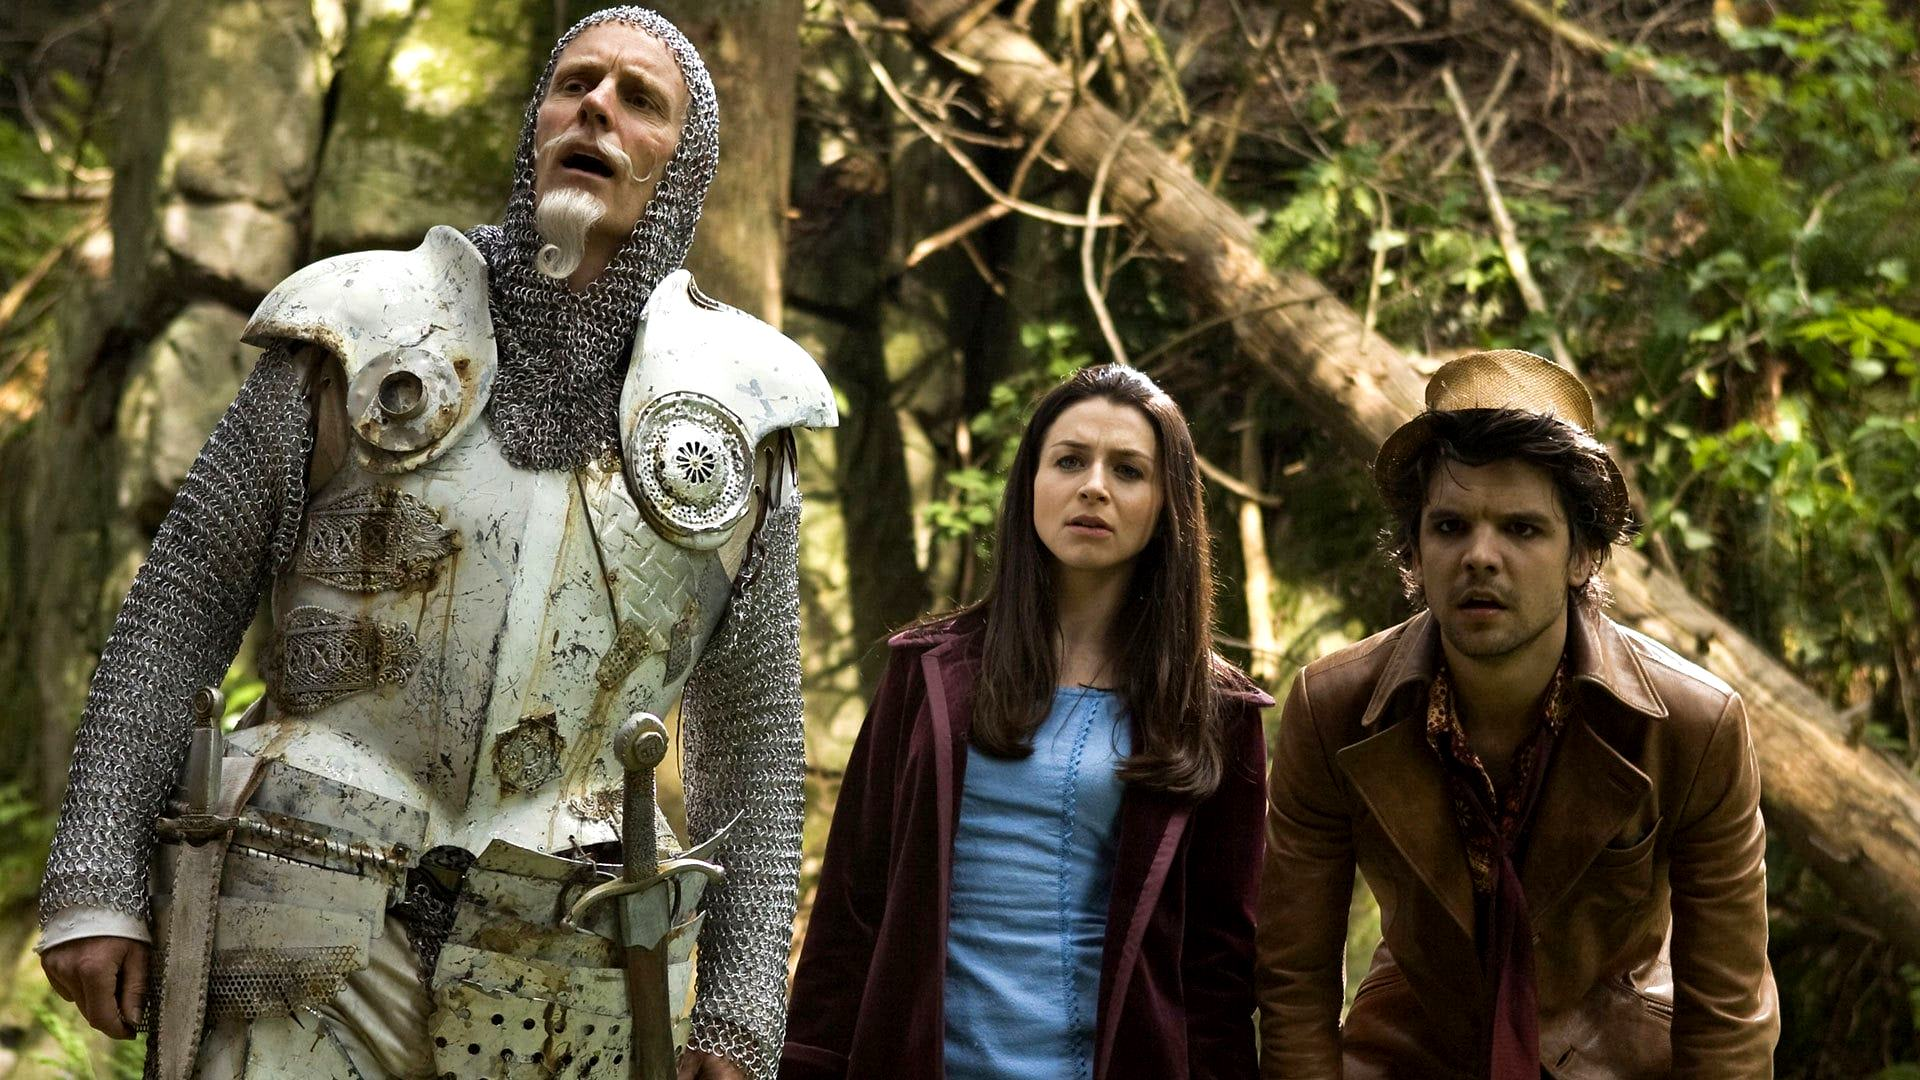 (l to r) The White Knight (Matt Frewer), Alice (Caterina Scorsone) and The Hatter (Andrew Lee Potts) in Alice (2009)